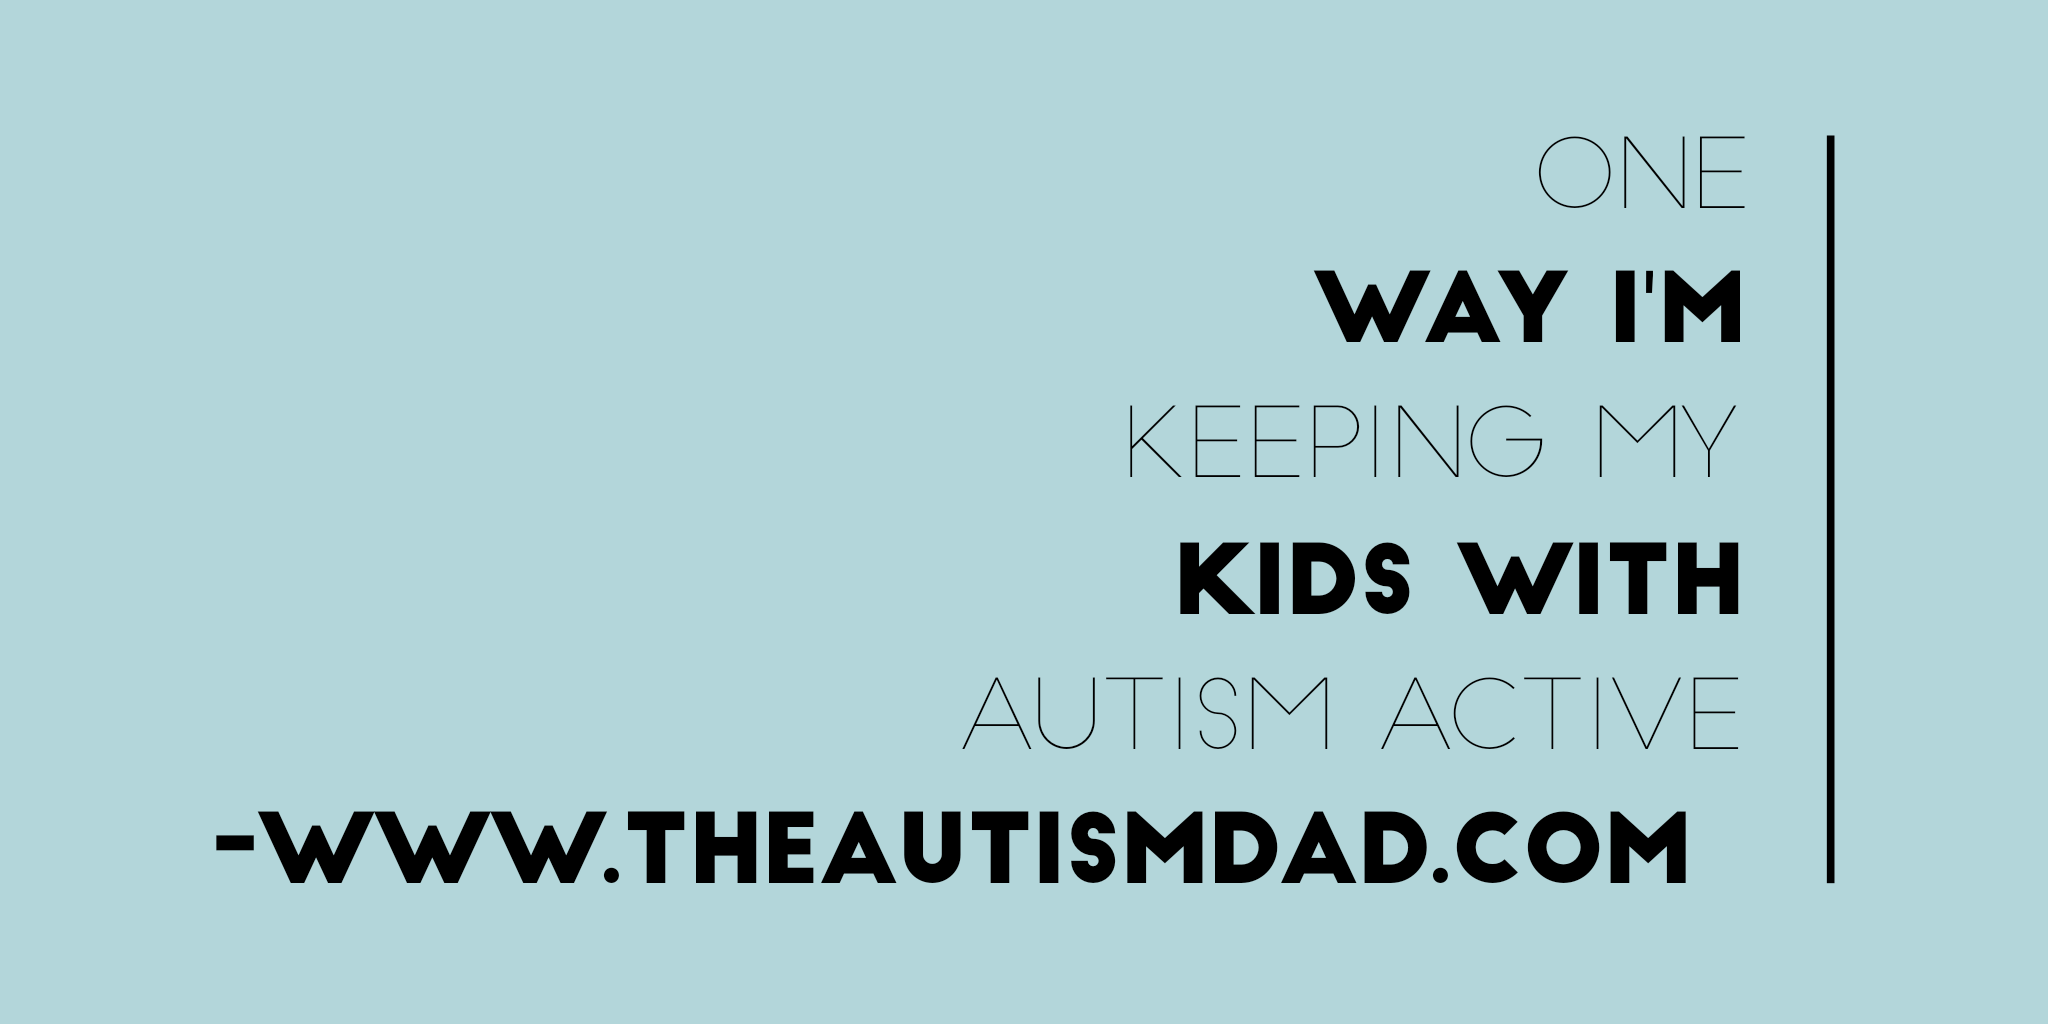 One way I'm keeping my kids with #Autism active